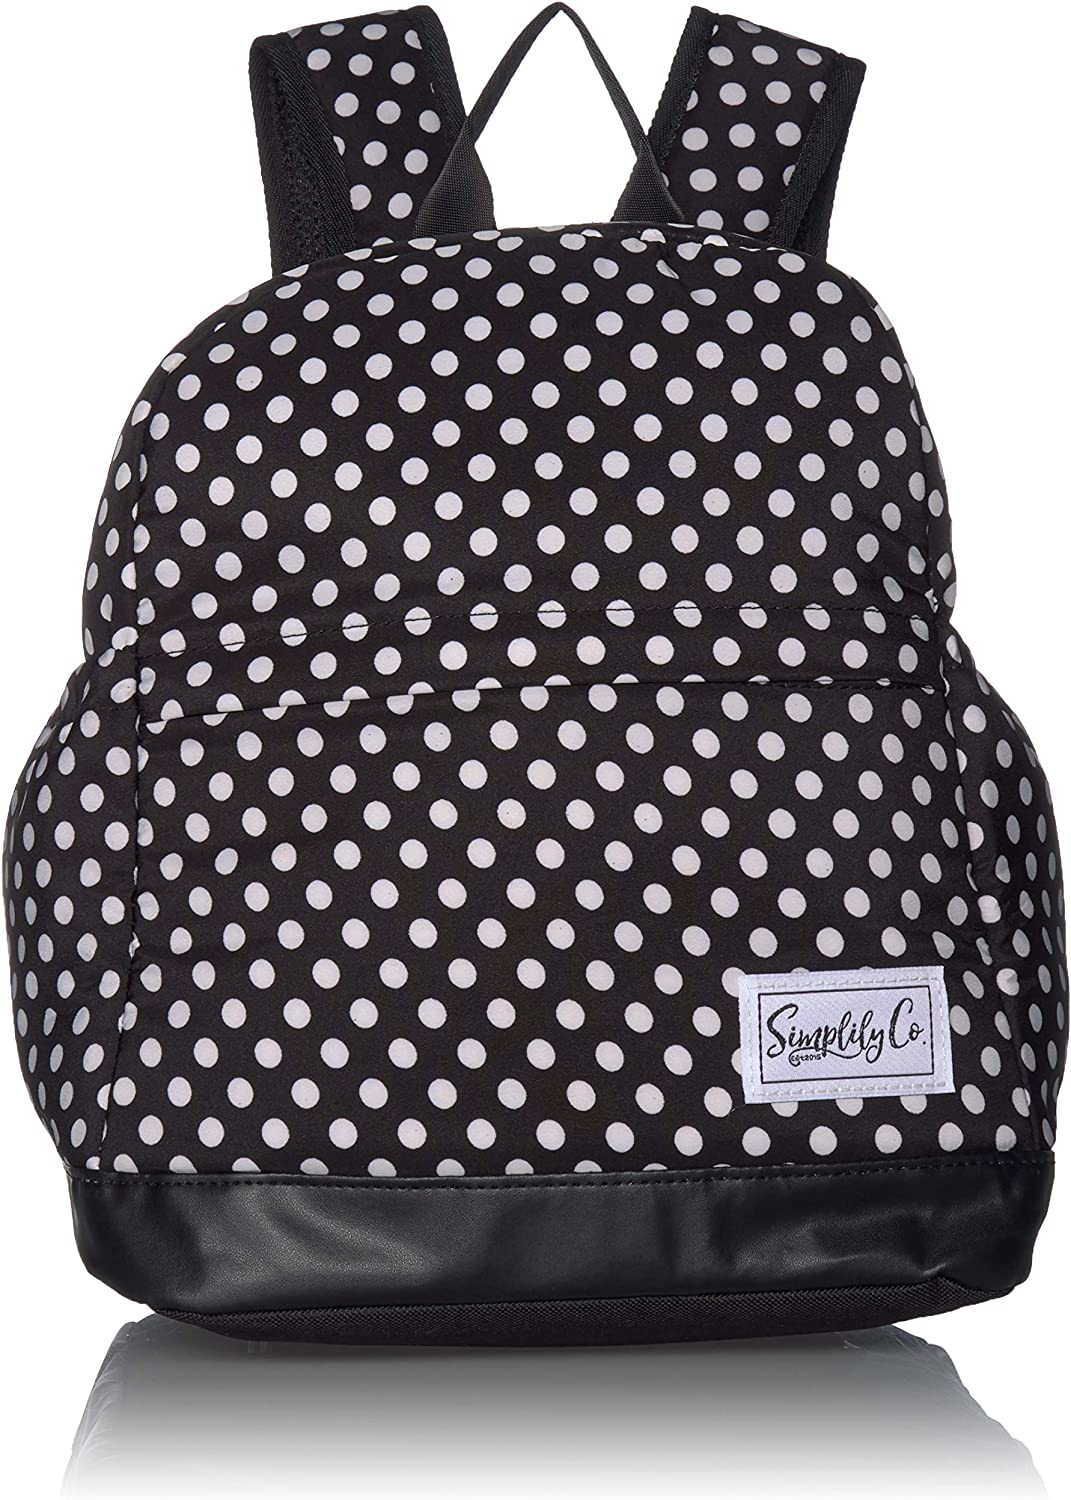 Insulated Mini Backpack Lunch Bag w/Padded Straps & Drink Side Pockets (Black & White Dots)